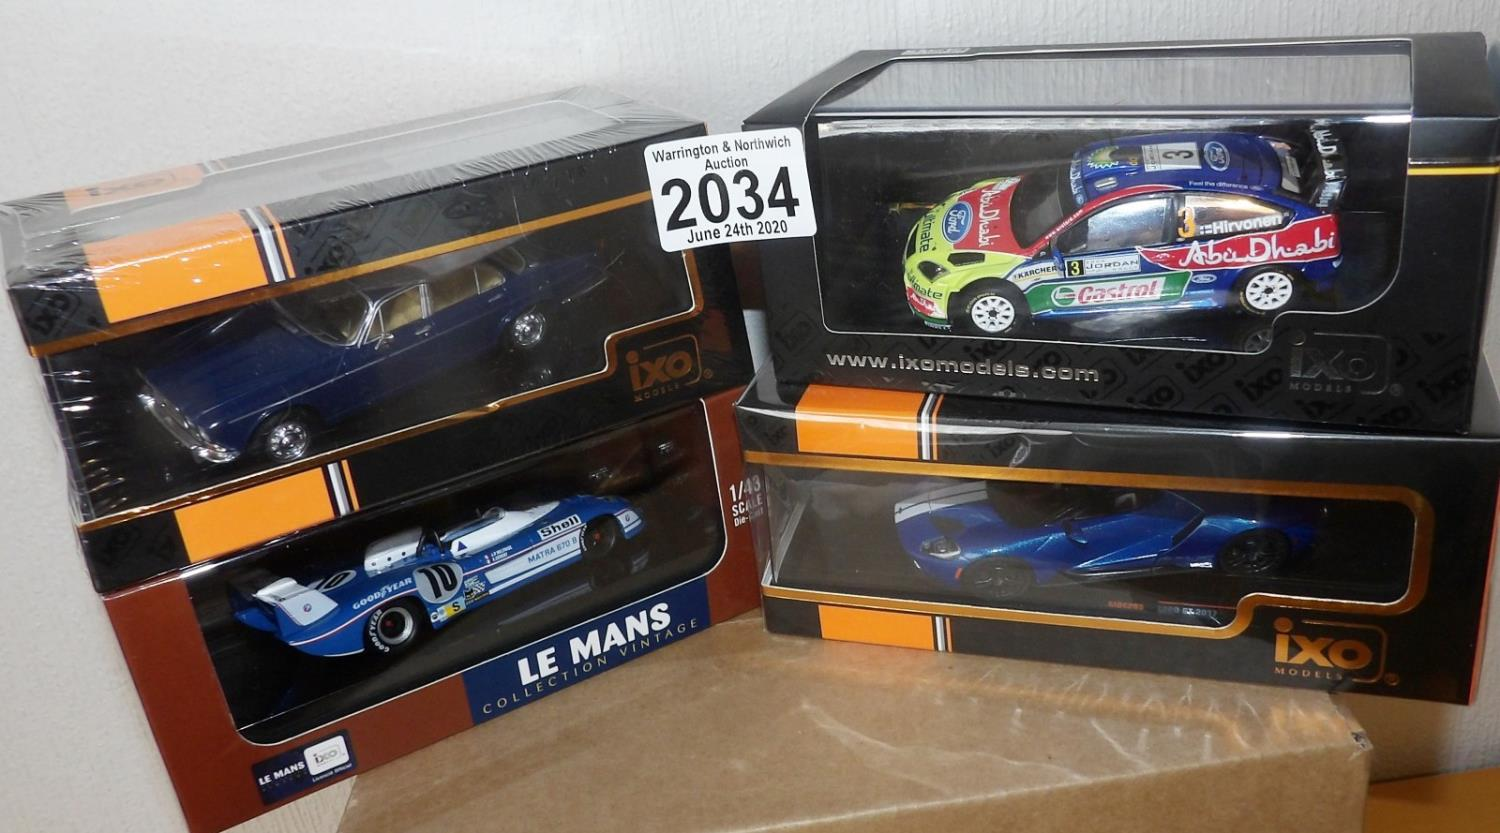 Lot 2034 - IXO X 4 1.43 Scale Mixed Race/Rally/Saloon cars. P&P Group 2 (£18+VAT for the first lot and £2+VAT